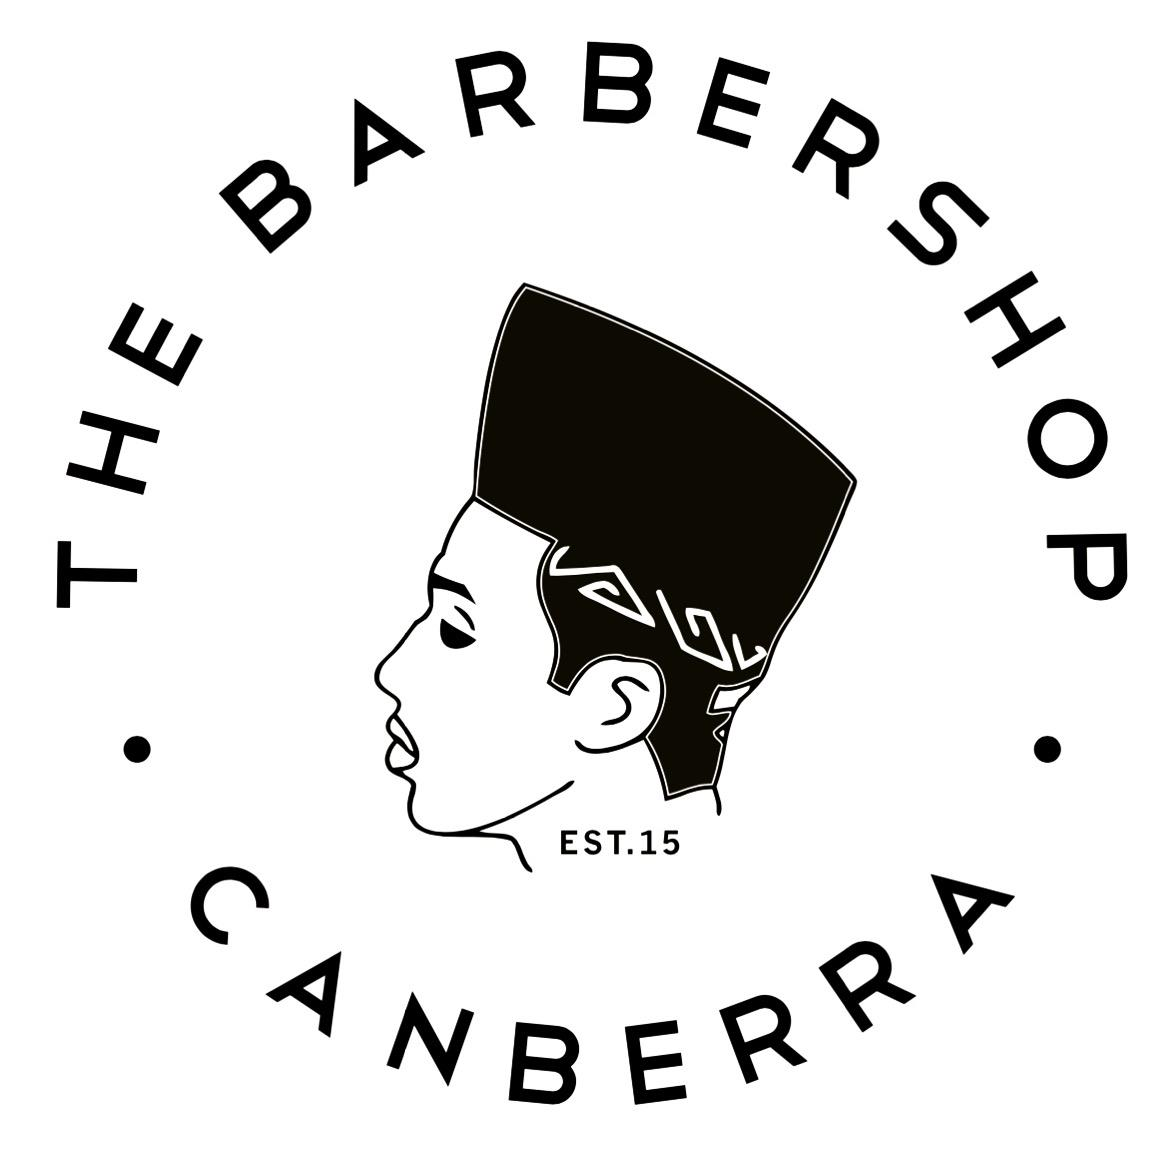 The Barbershop Canberra